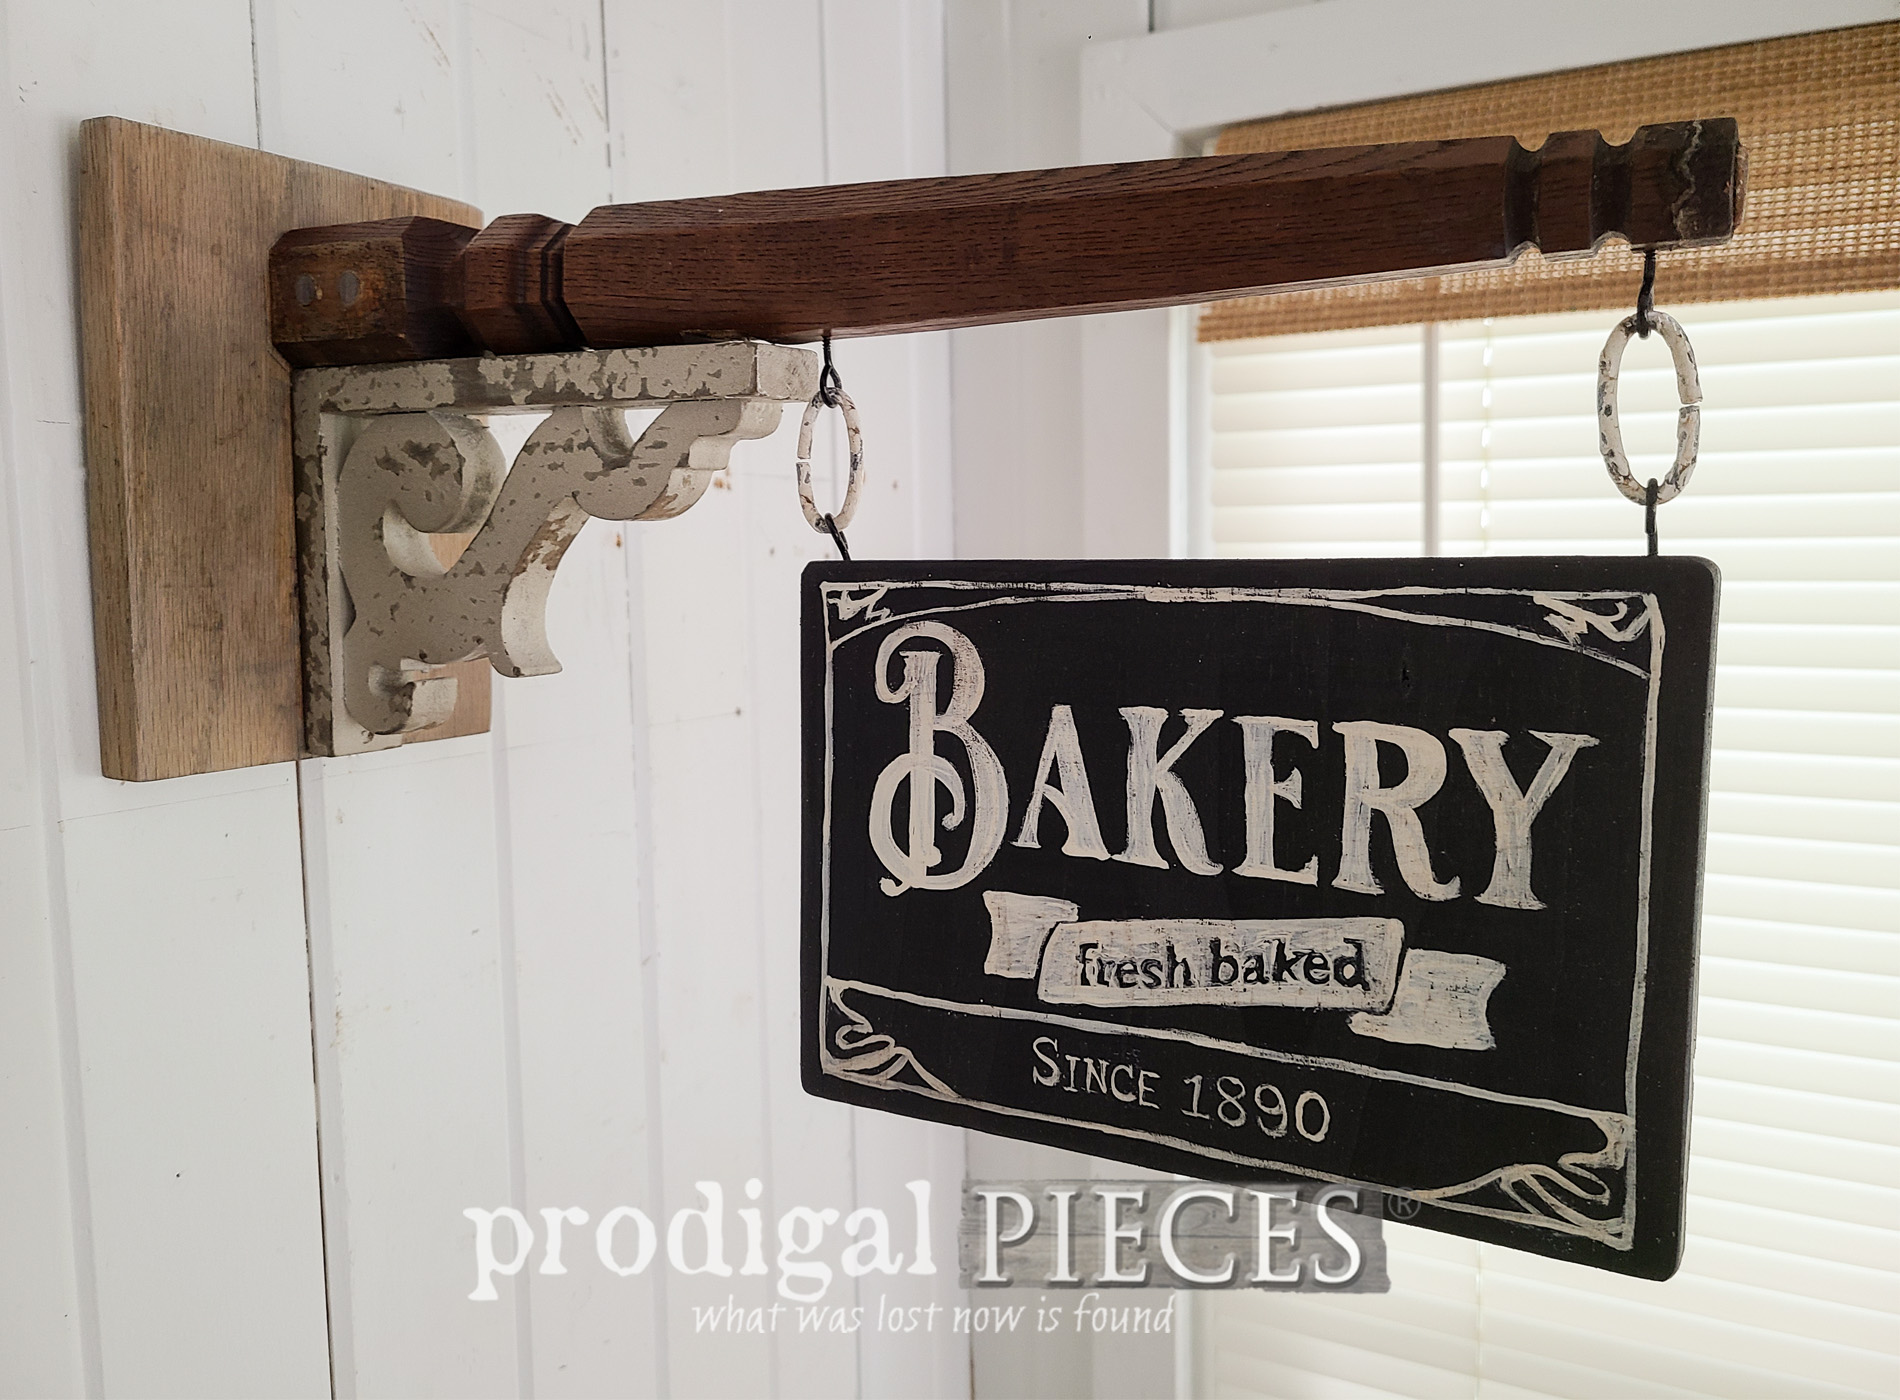 Featured Upcycled Chair Legs Turned Architectural Salvage Signs by Larissa of Prodigal Pieces | prodigalpieces.com #prodigalpieces #diy #farmhouse #upcycled #home #homedecor